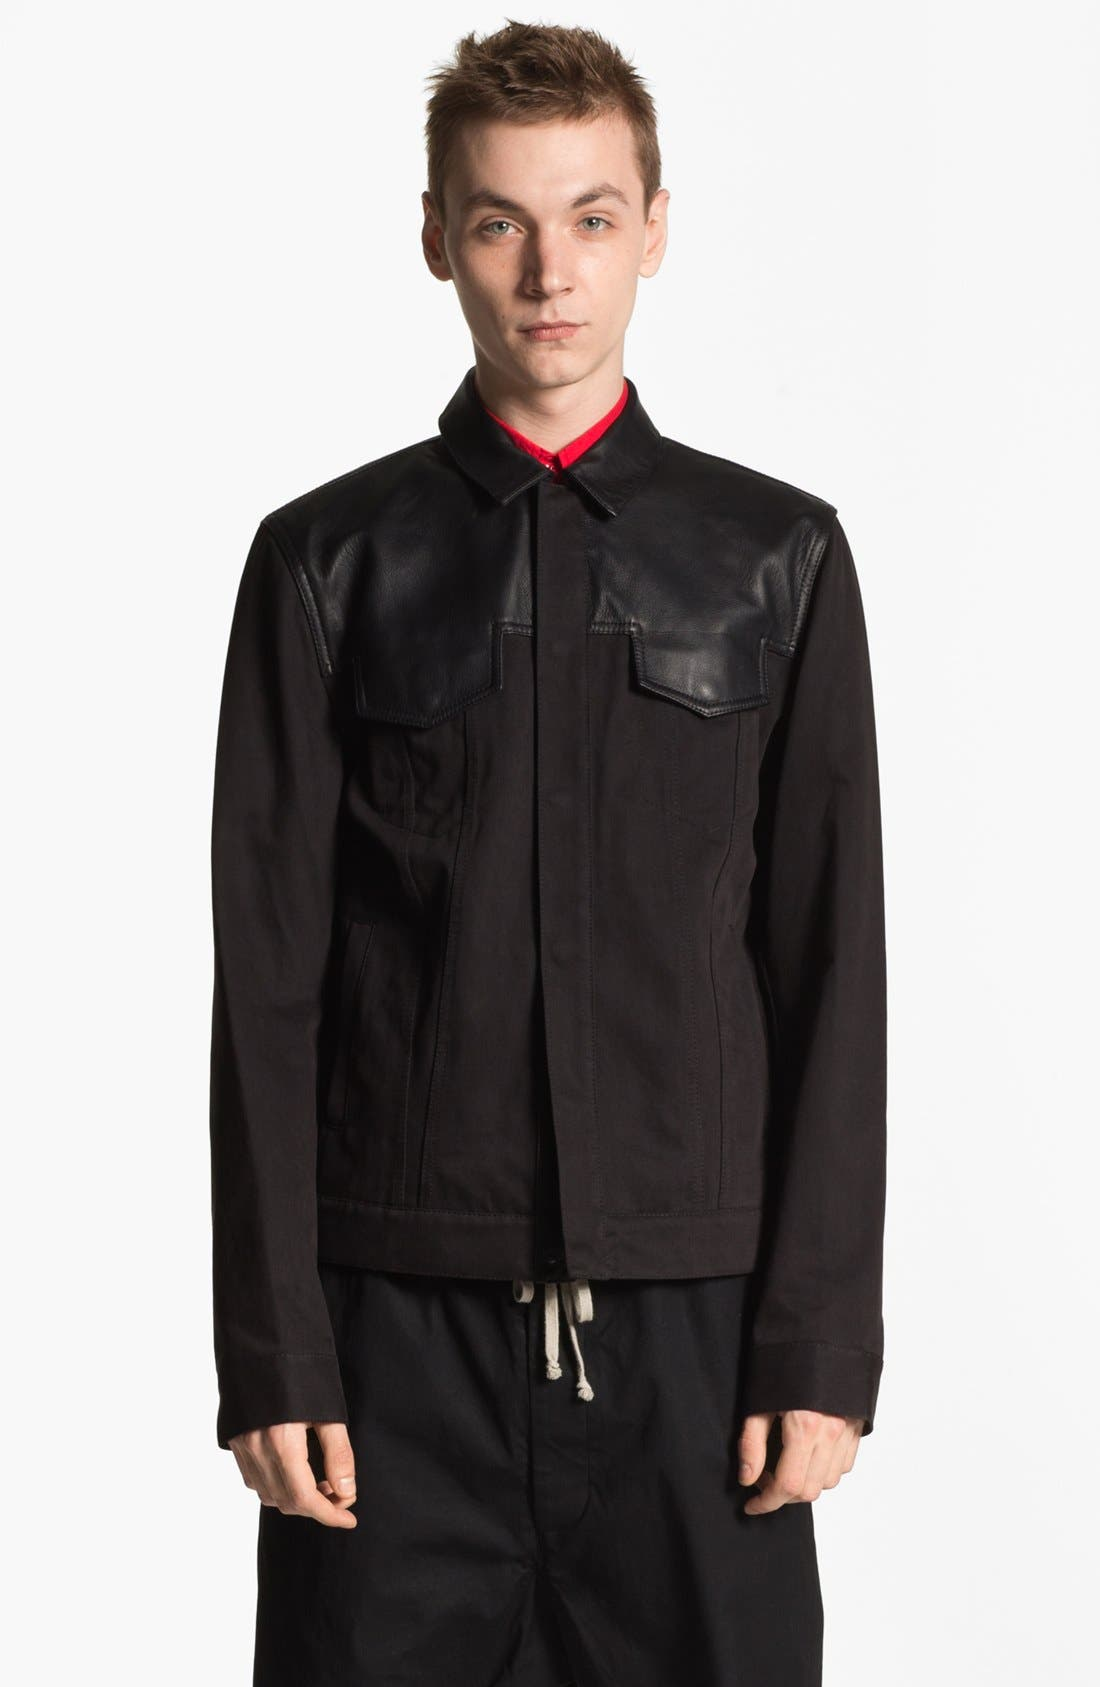 Alternate Image 1 Selected - T by Alexander Wang Cotton & Leather Bomber Jacket